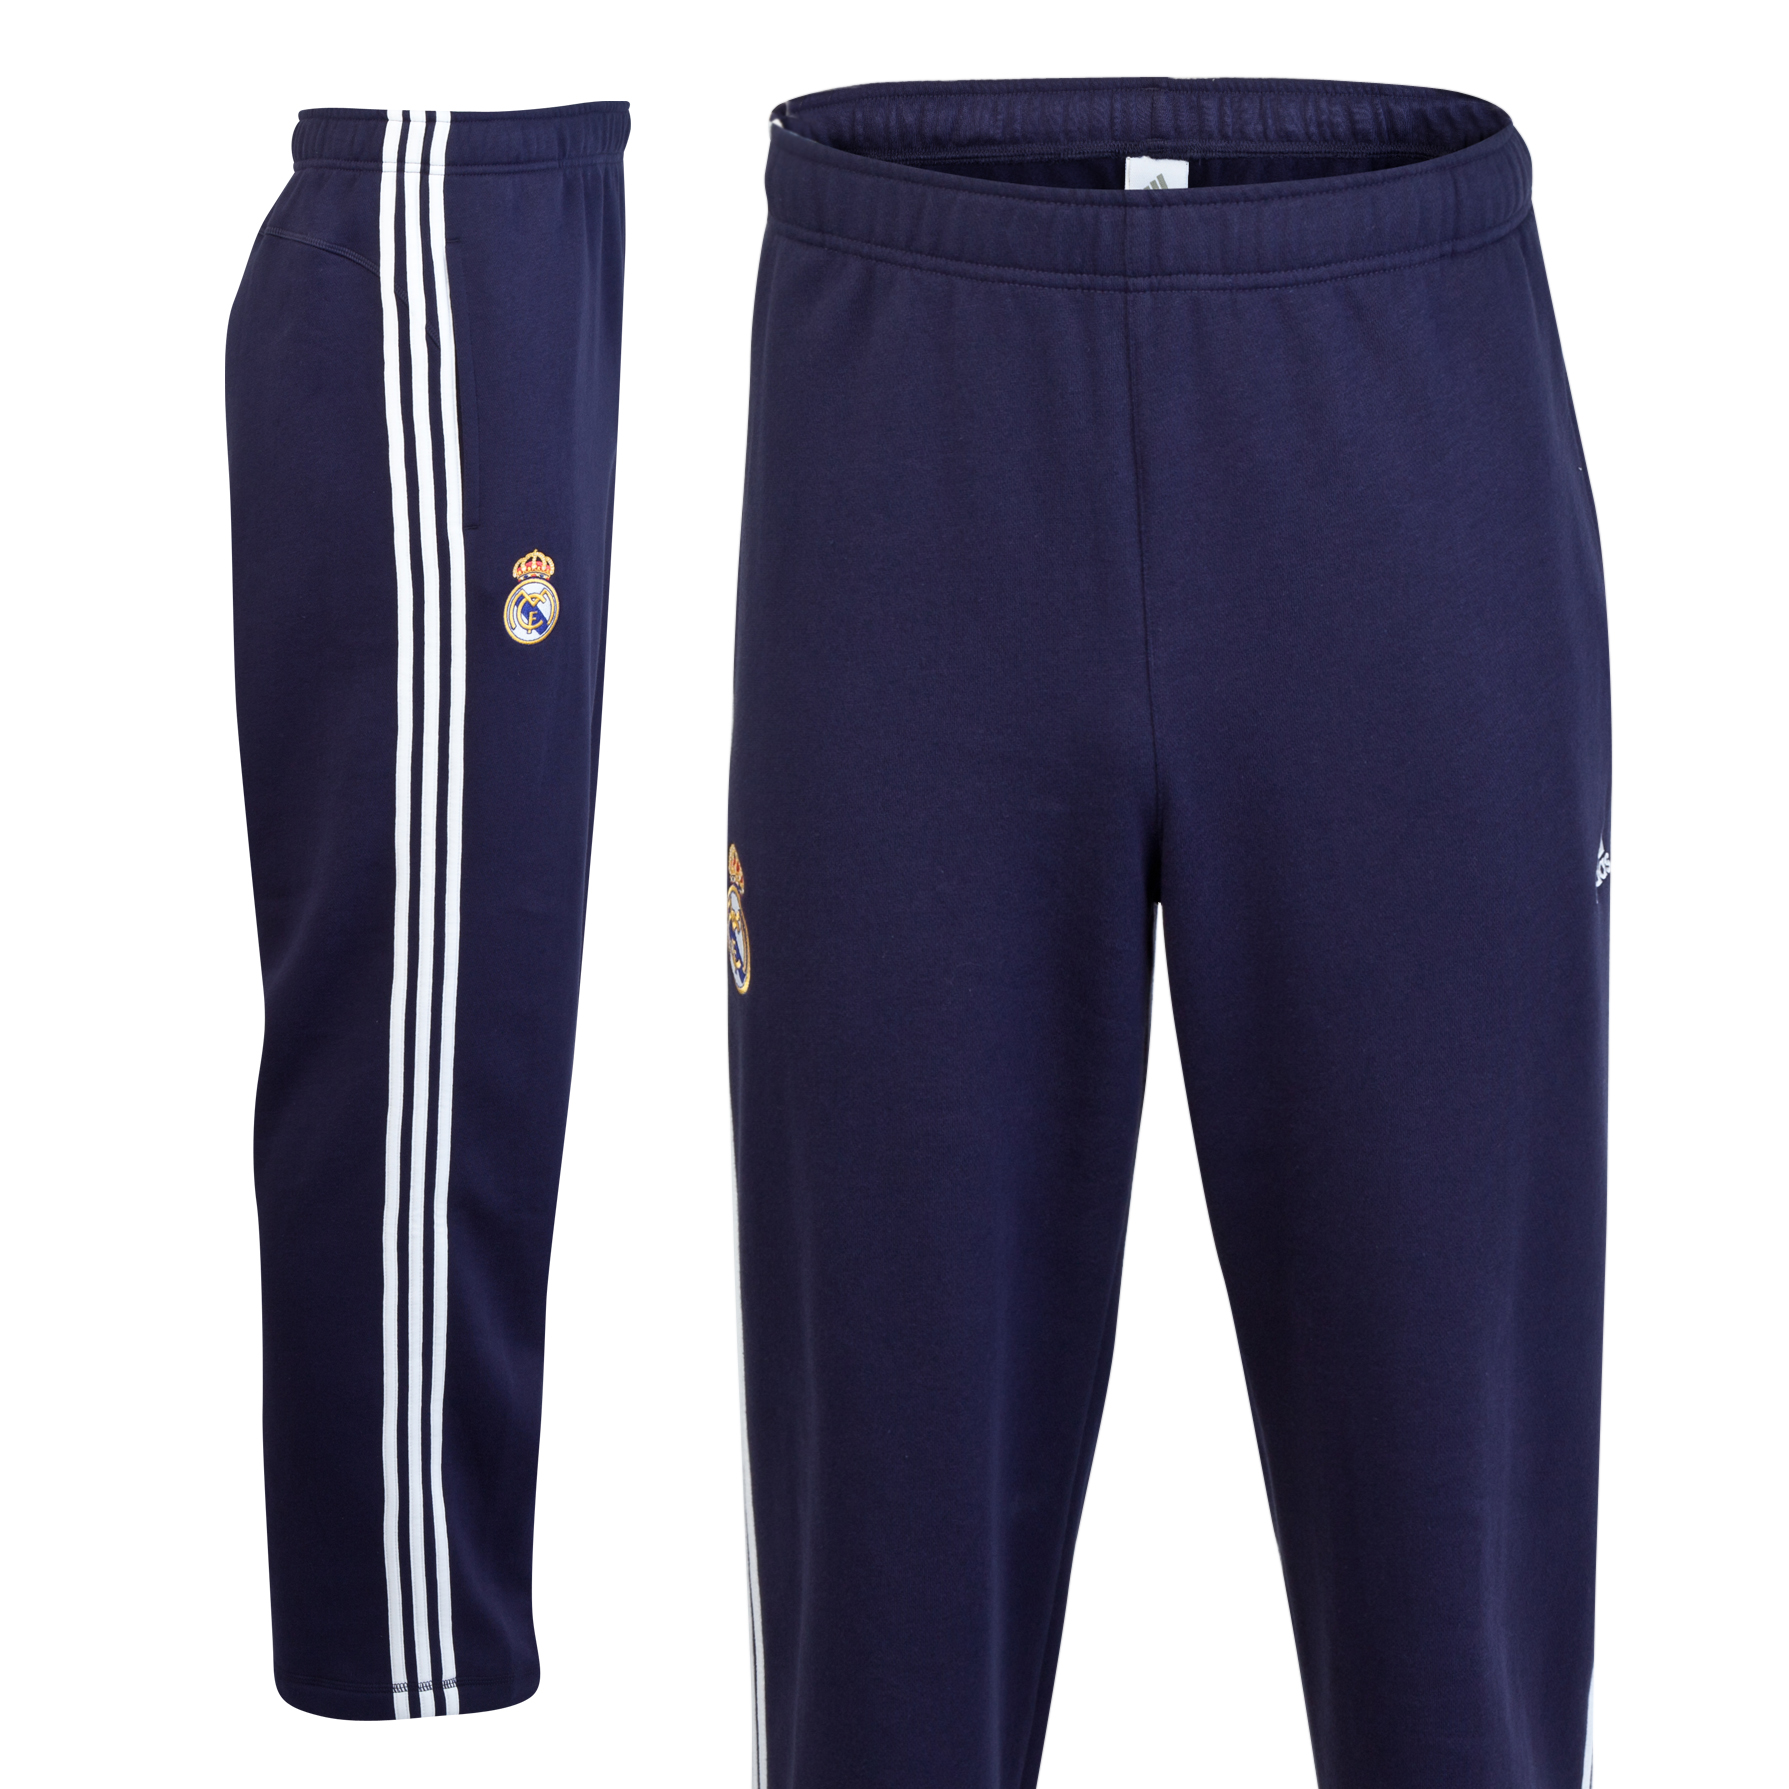 Pantaln Core Real Madrid - Negro/blanco